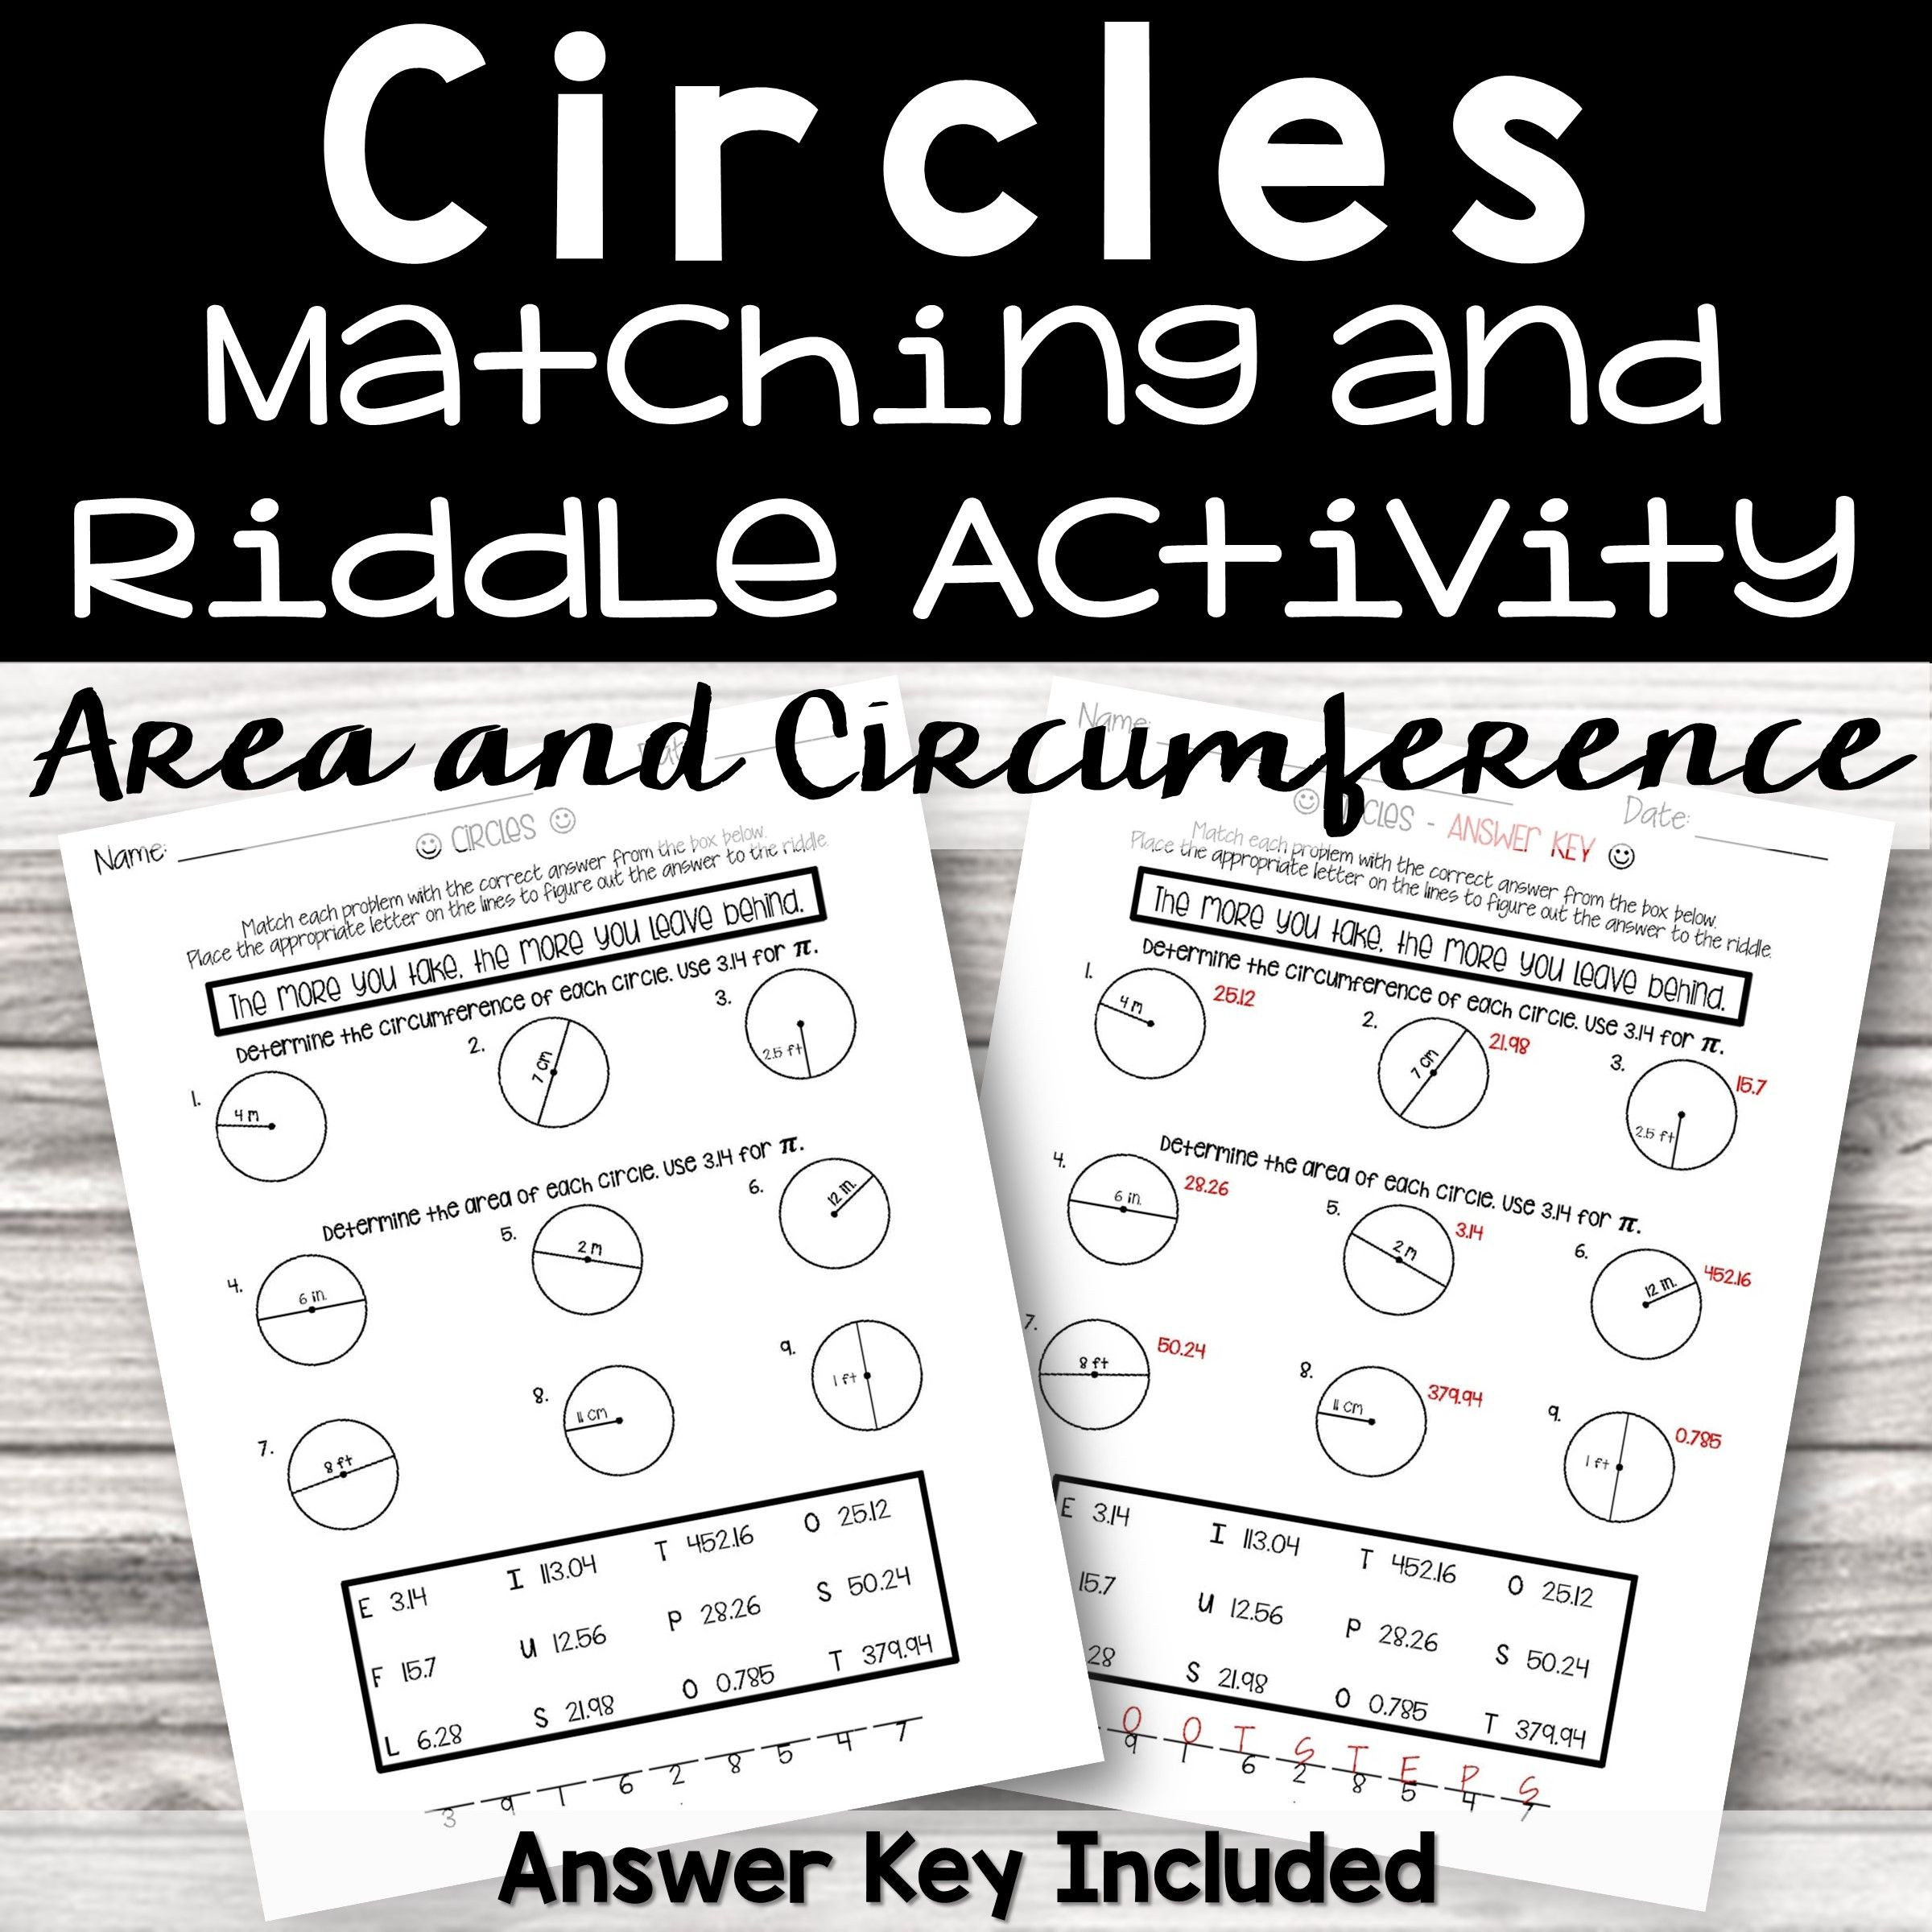 Area And Circumference Of Circles Riddle Activity From Count On Me Math Riddles Riddles Kindergarten Math Worksheets [ 2400 x 2400 Pixel ]